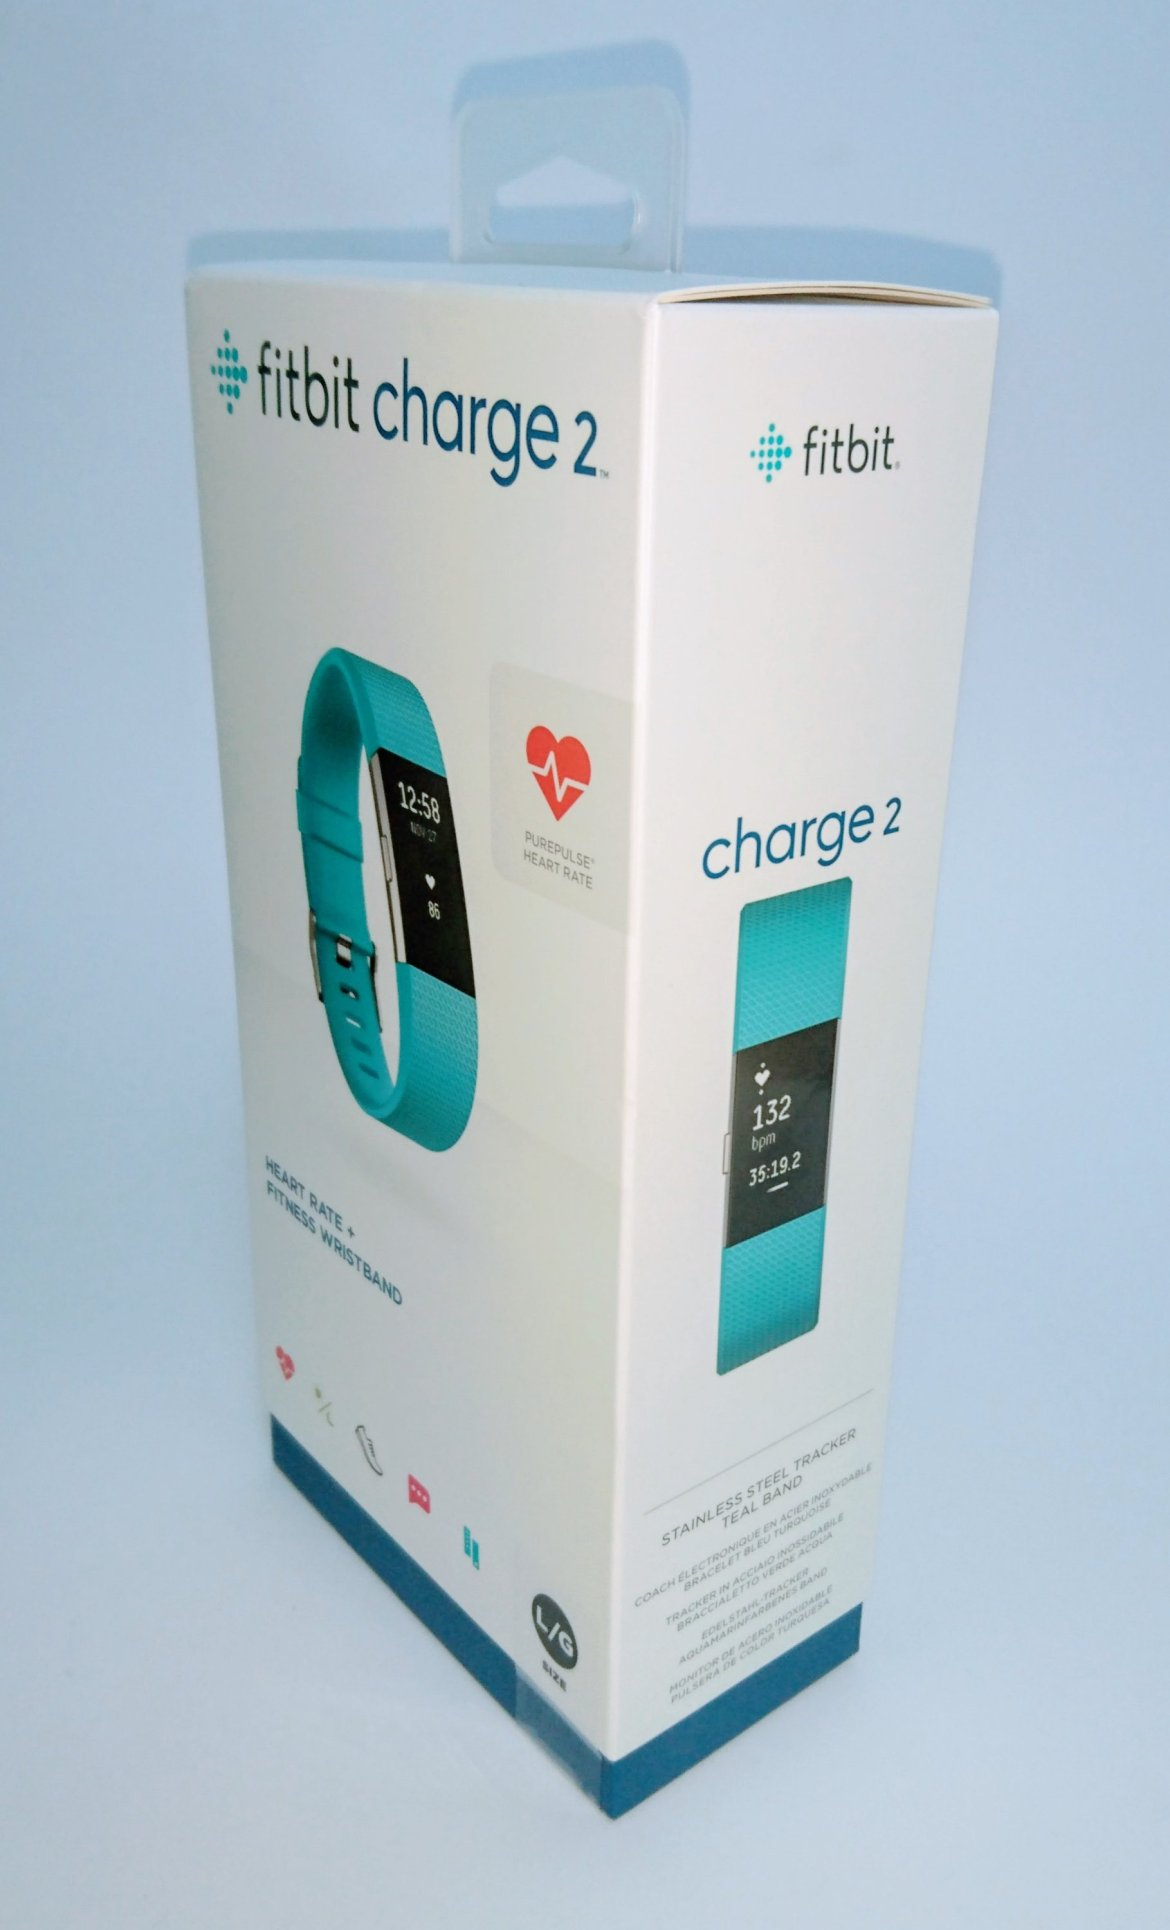 Fitbit Charge 2 box front